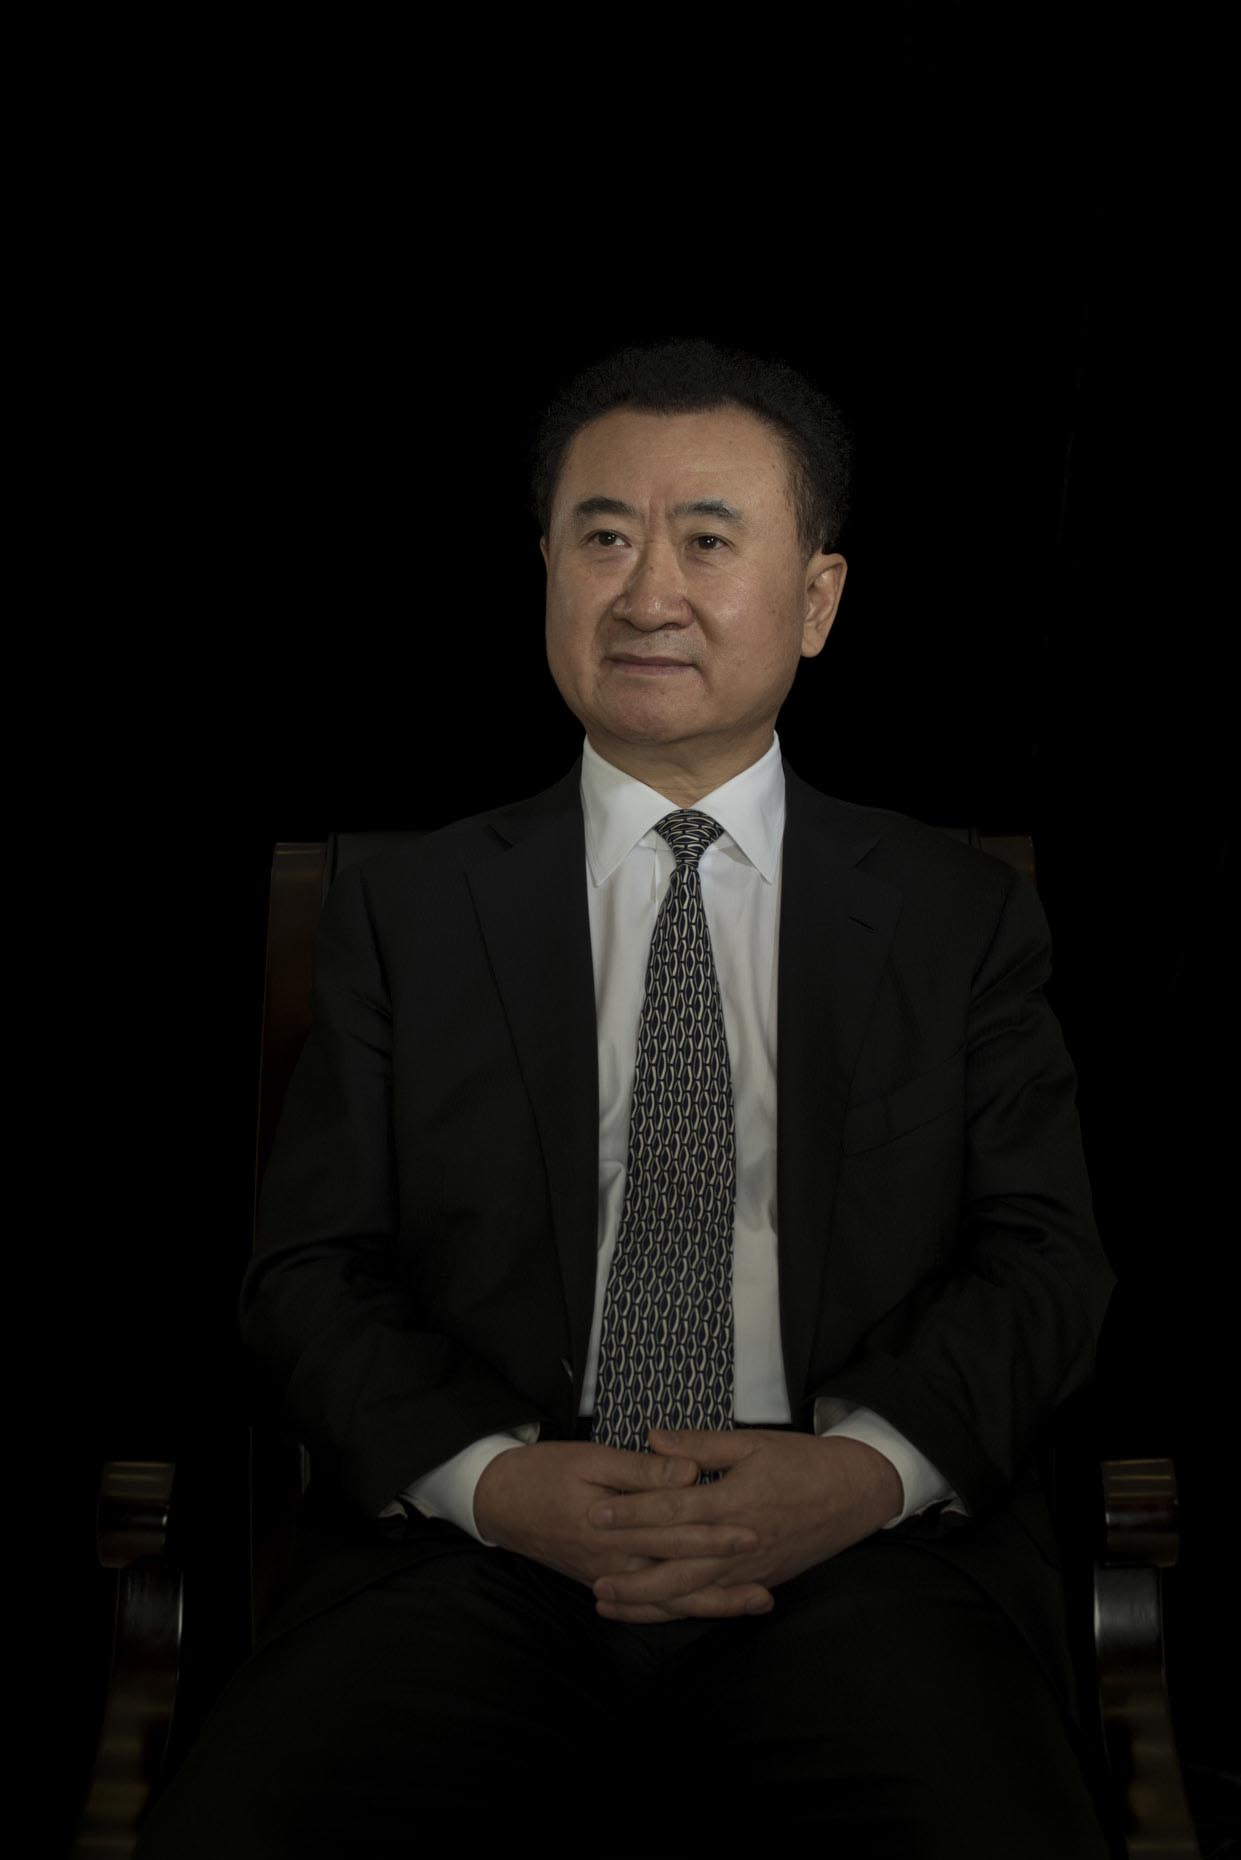 Minimal Portrait of Wang Jianlin by Photographer Stefen Chow | China